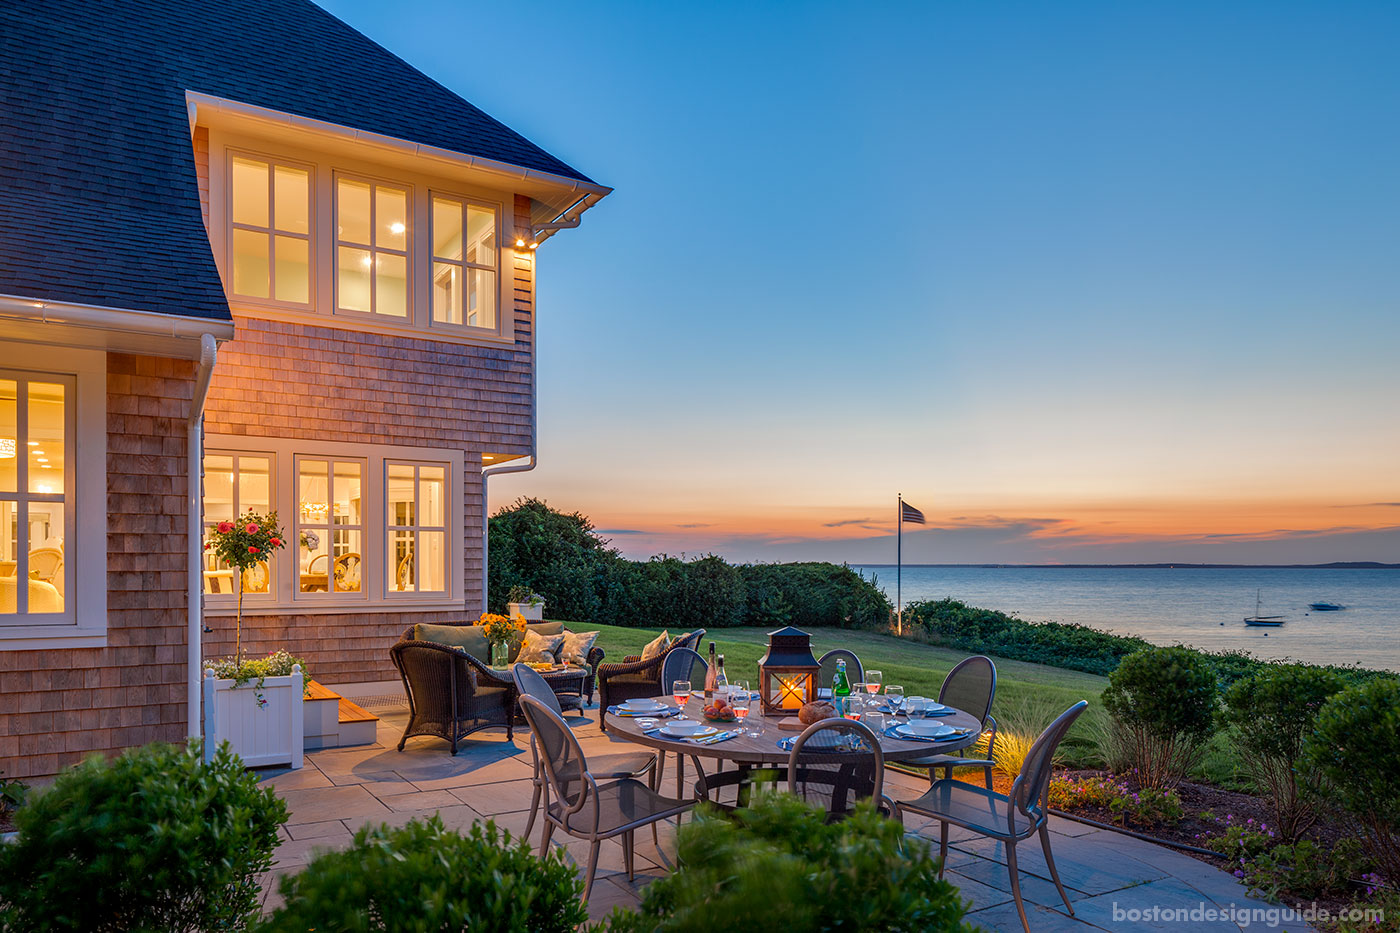 Cape Cod home with outdoor terrace by Polhemus Savery DaSilva Architects Builders PSD, photo by Brian Vanden Brink